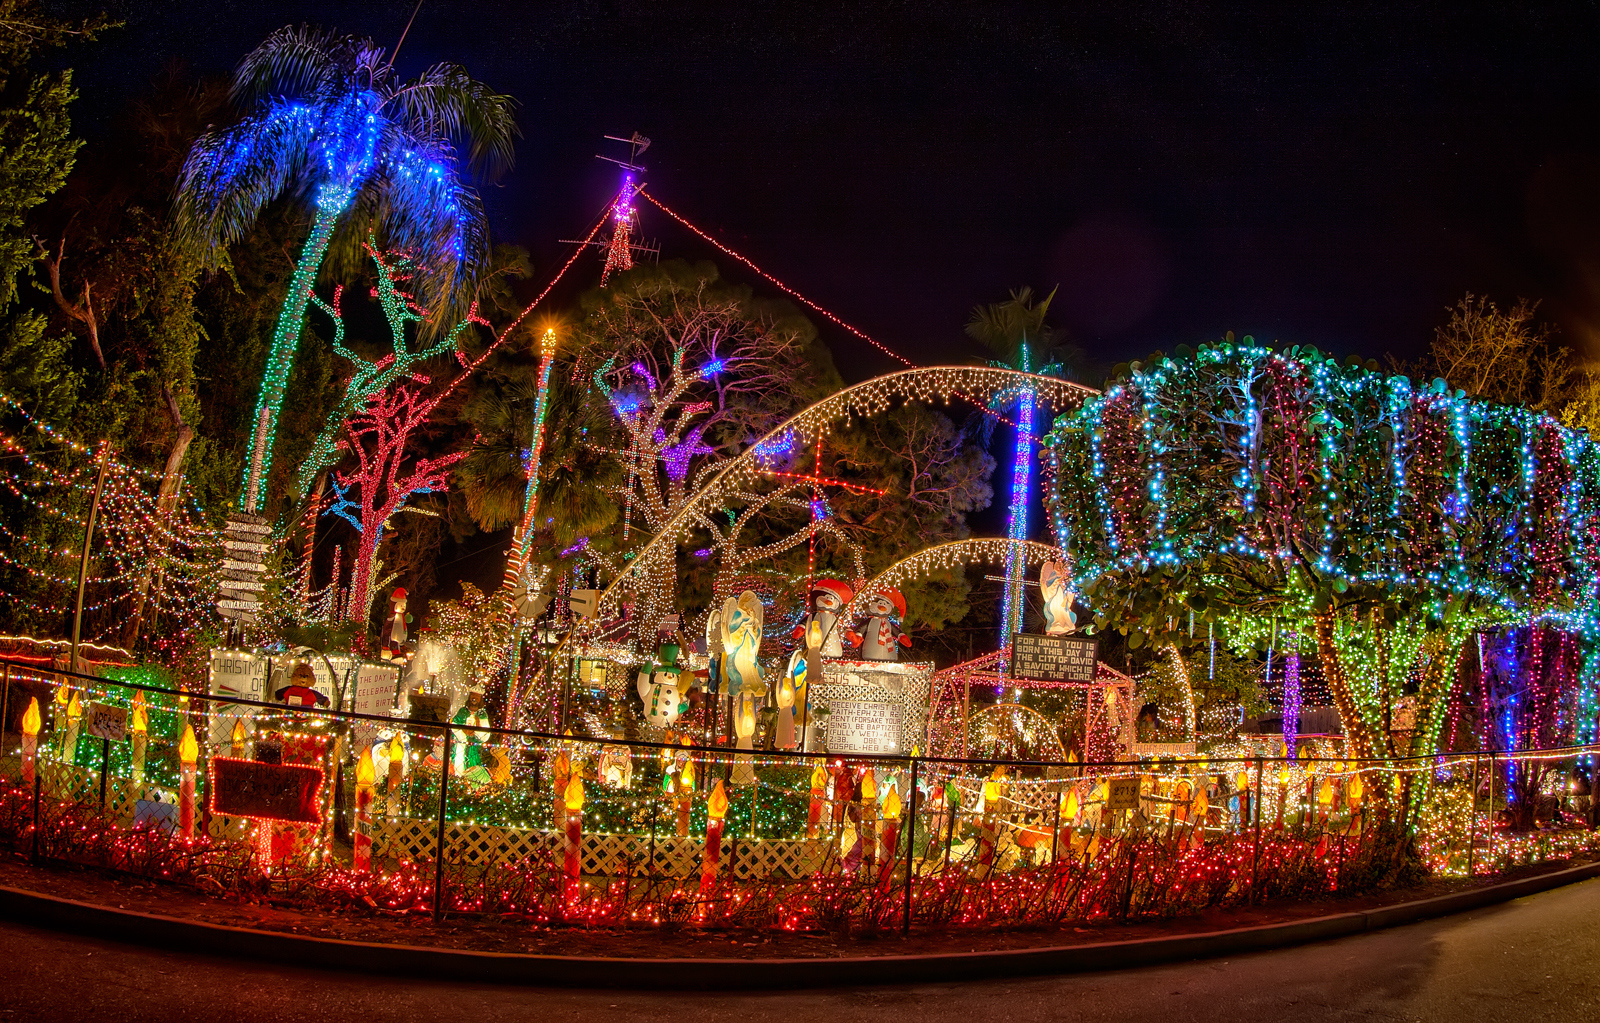 Stephen Foster Christmas Lights 2020 Visit The 12 Best Christmas Lights Displays In Florida For A